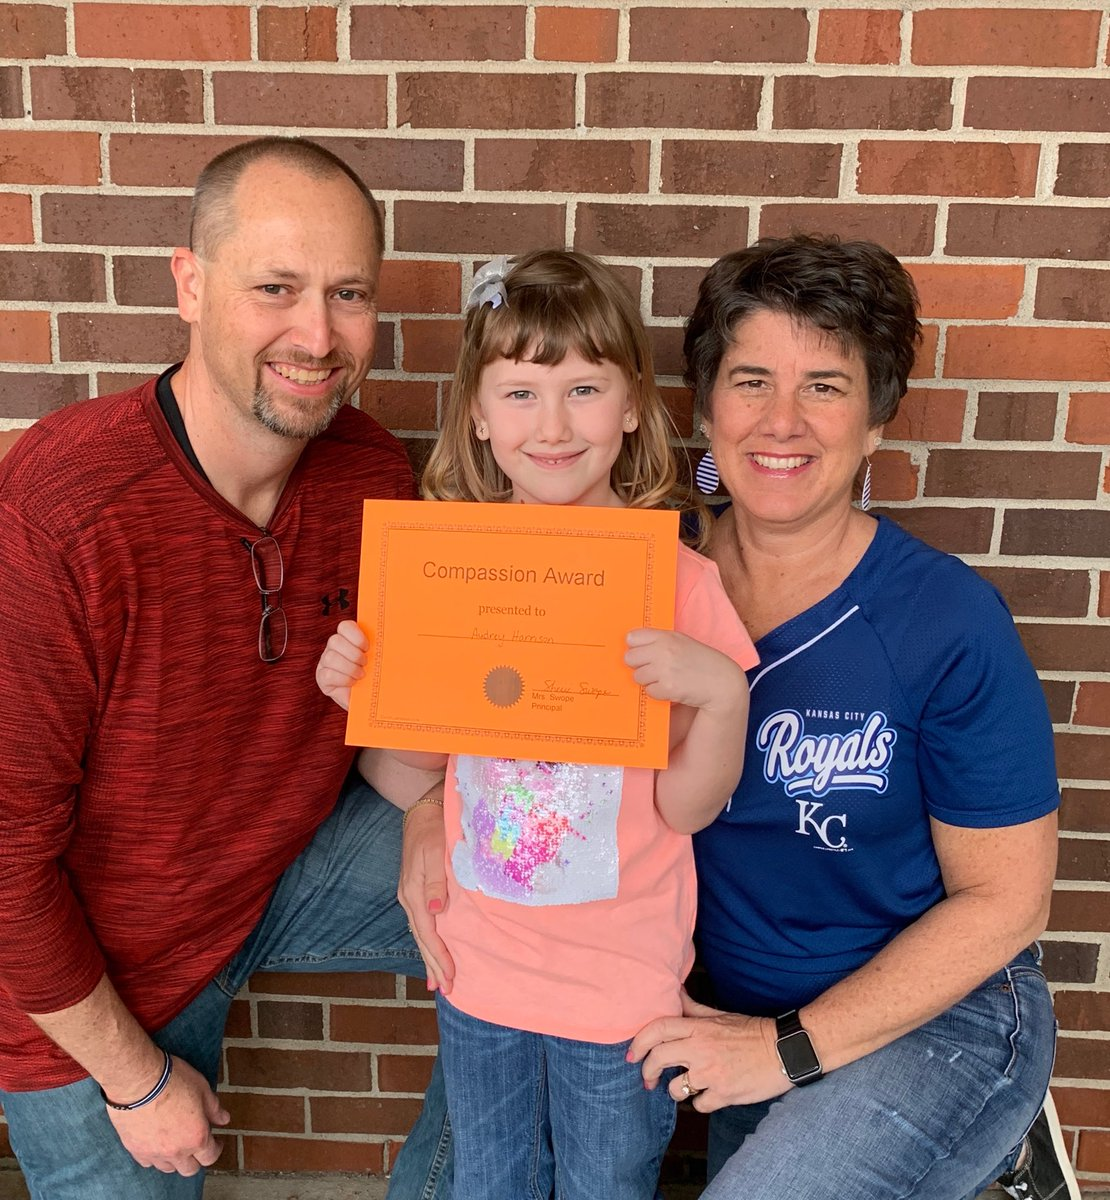 Audrey was Student of the Month for Compassion. So proud of our girl! #CardinalPride @HenryElementary @CMSCardinals @ClintonMoCards